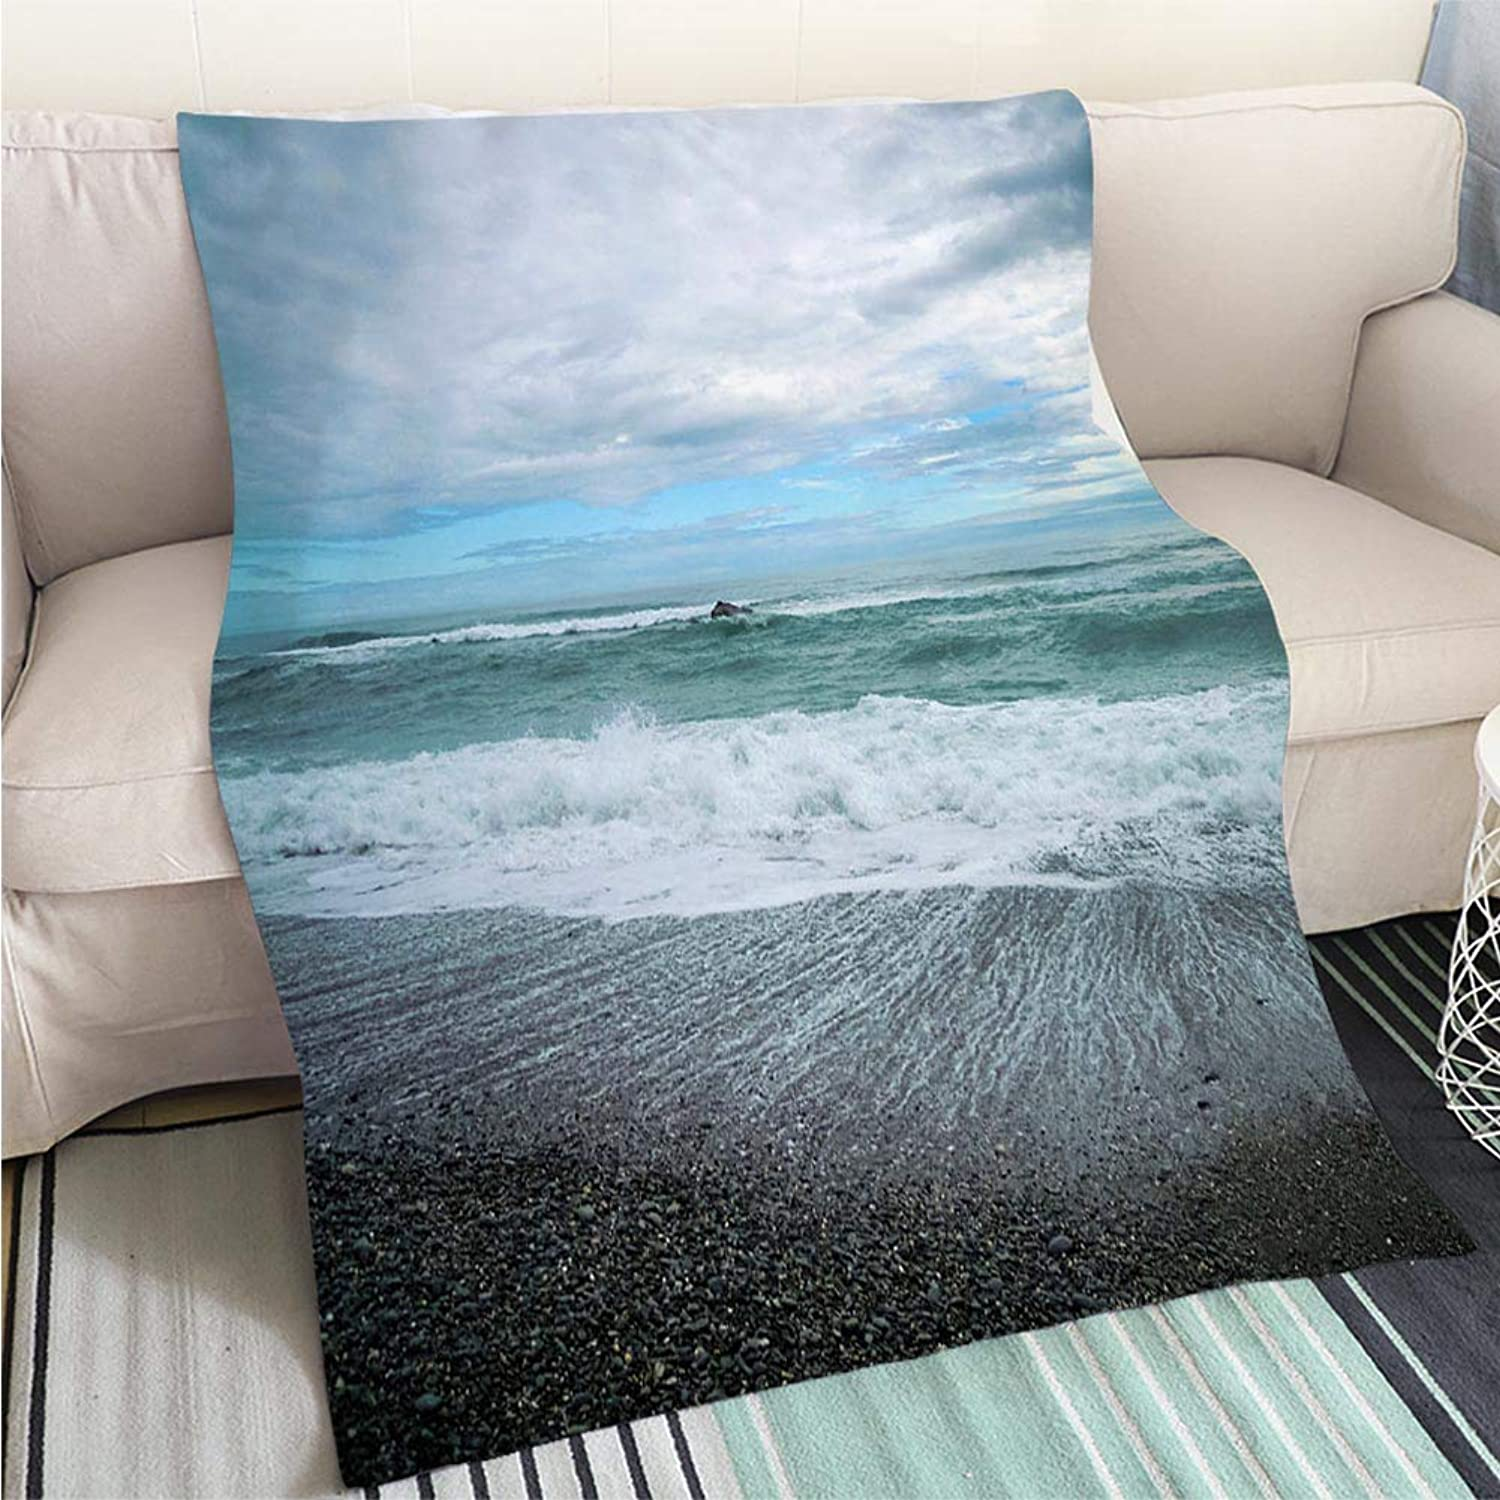 BEICICI Art Design Photos Cool Quilt Galway Beach South Island New Zealand Fun Design AllSeason Blanket Bed or Couch